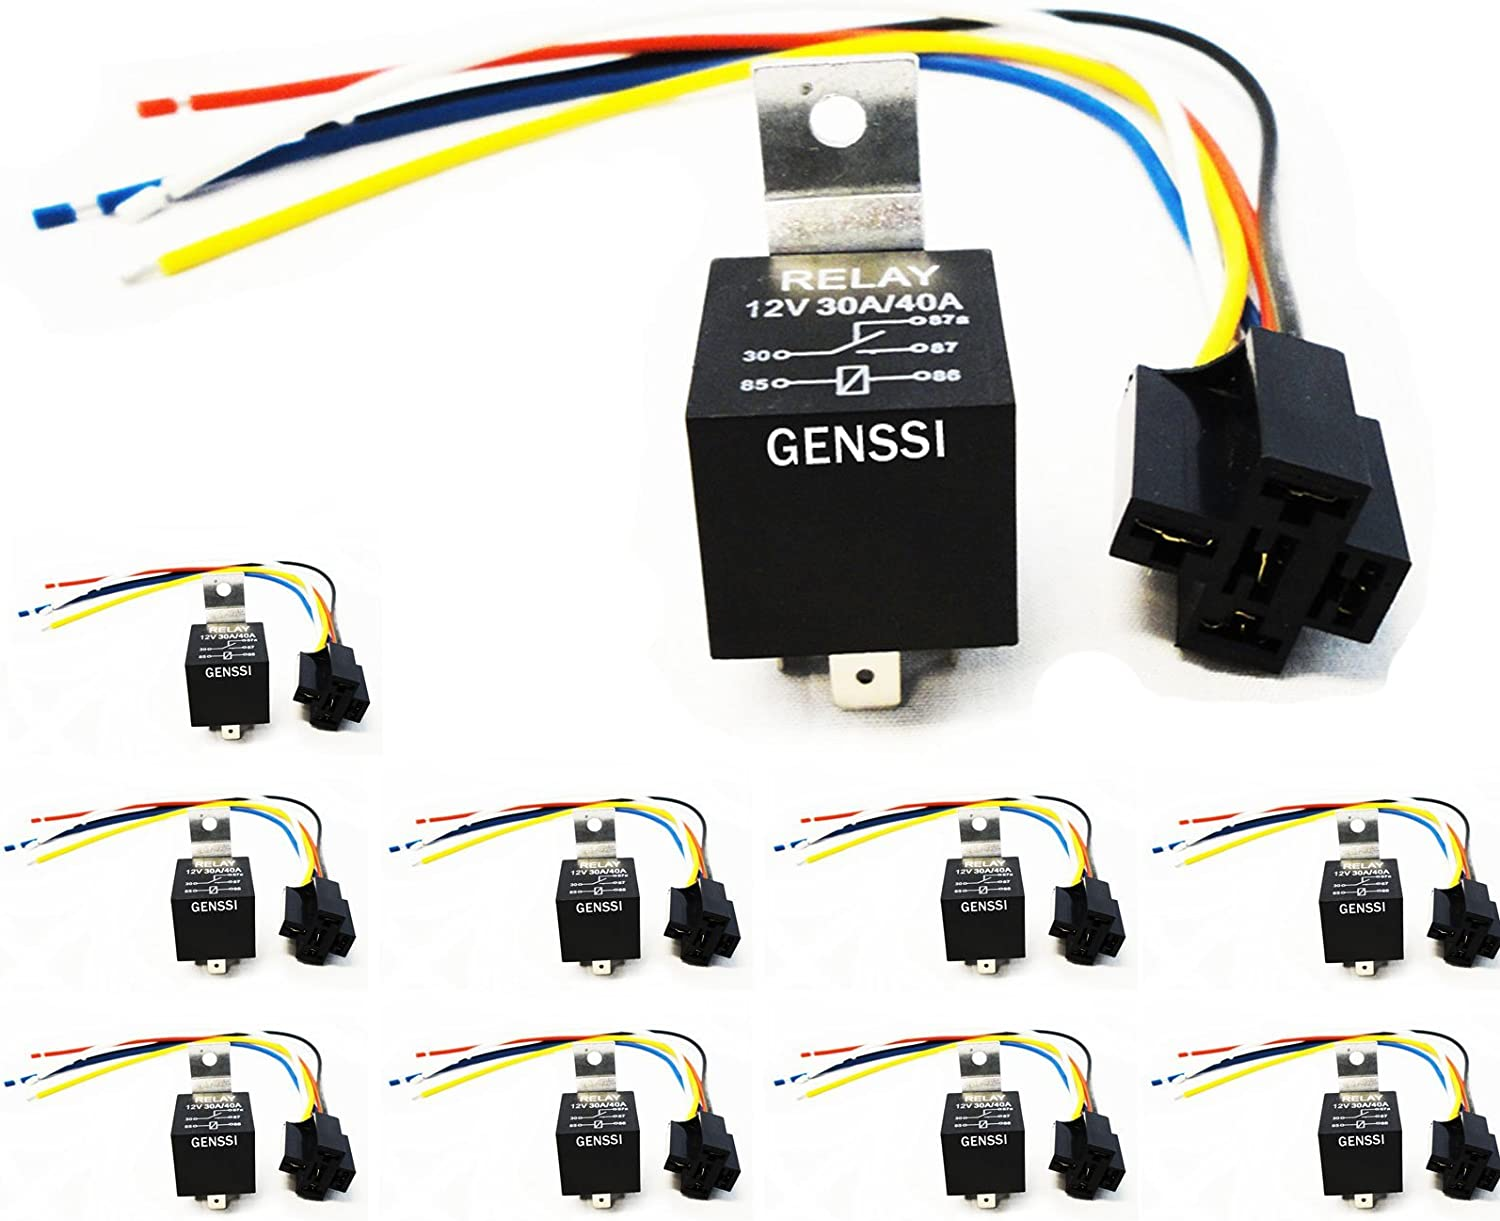 Amazon.com: Genssi 30/40 AMP Auto LED Light Bar Relay Wiring Harness SPDT  12V 40A (10 Pack): AutomotiveAmazon.com